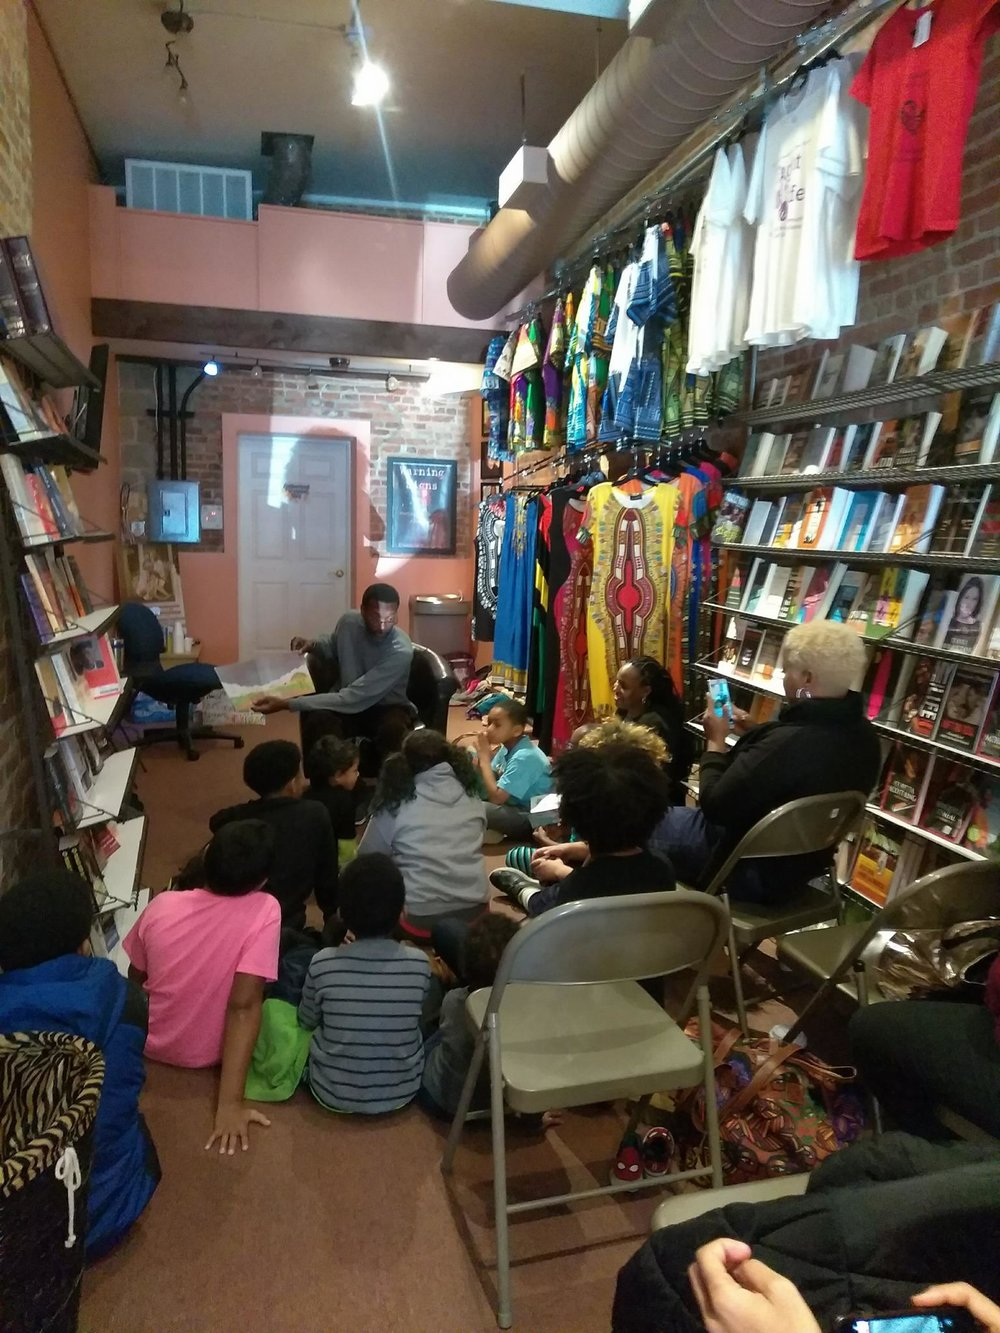 photo curtersoy of black stone bookstore